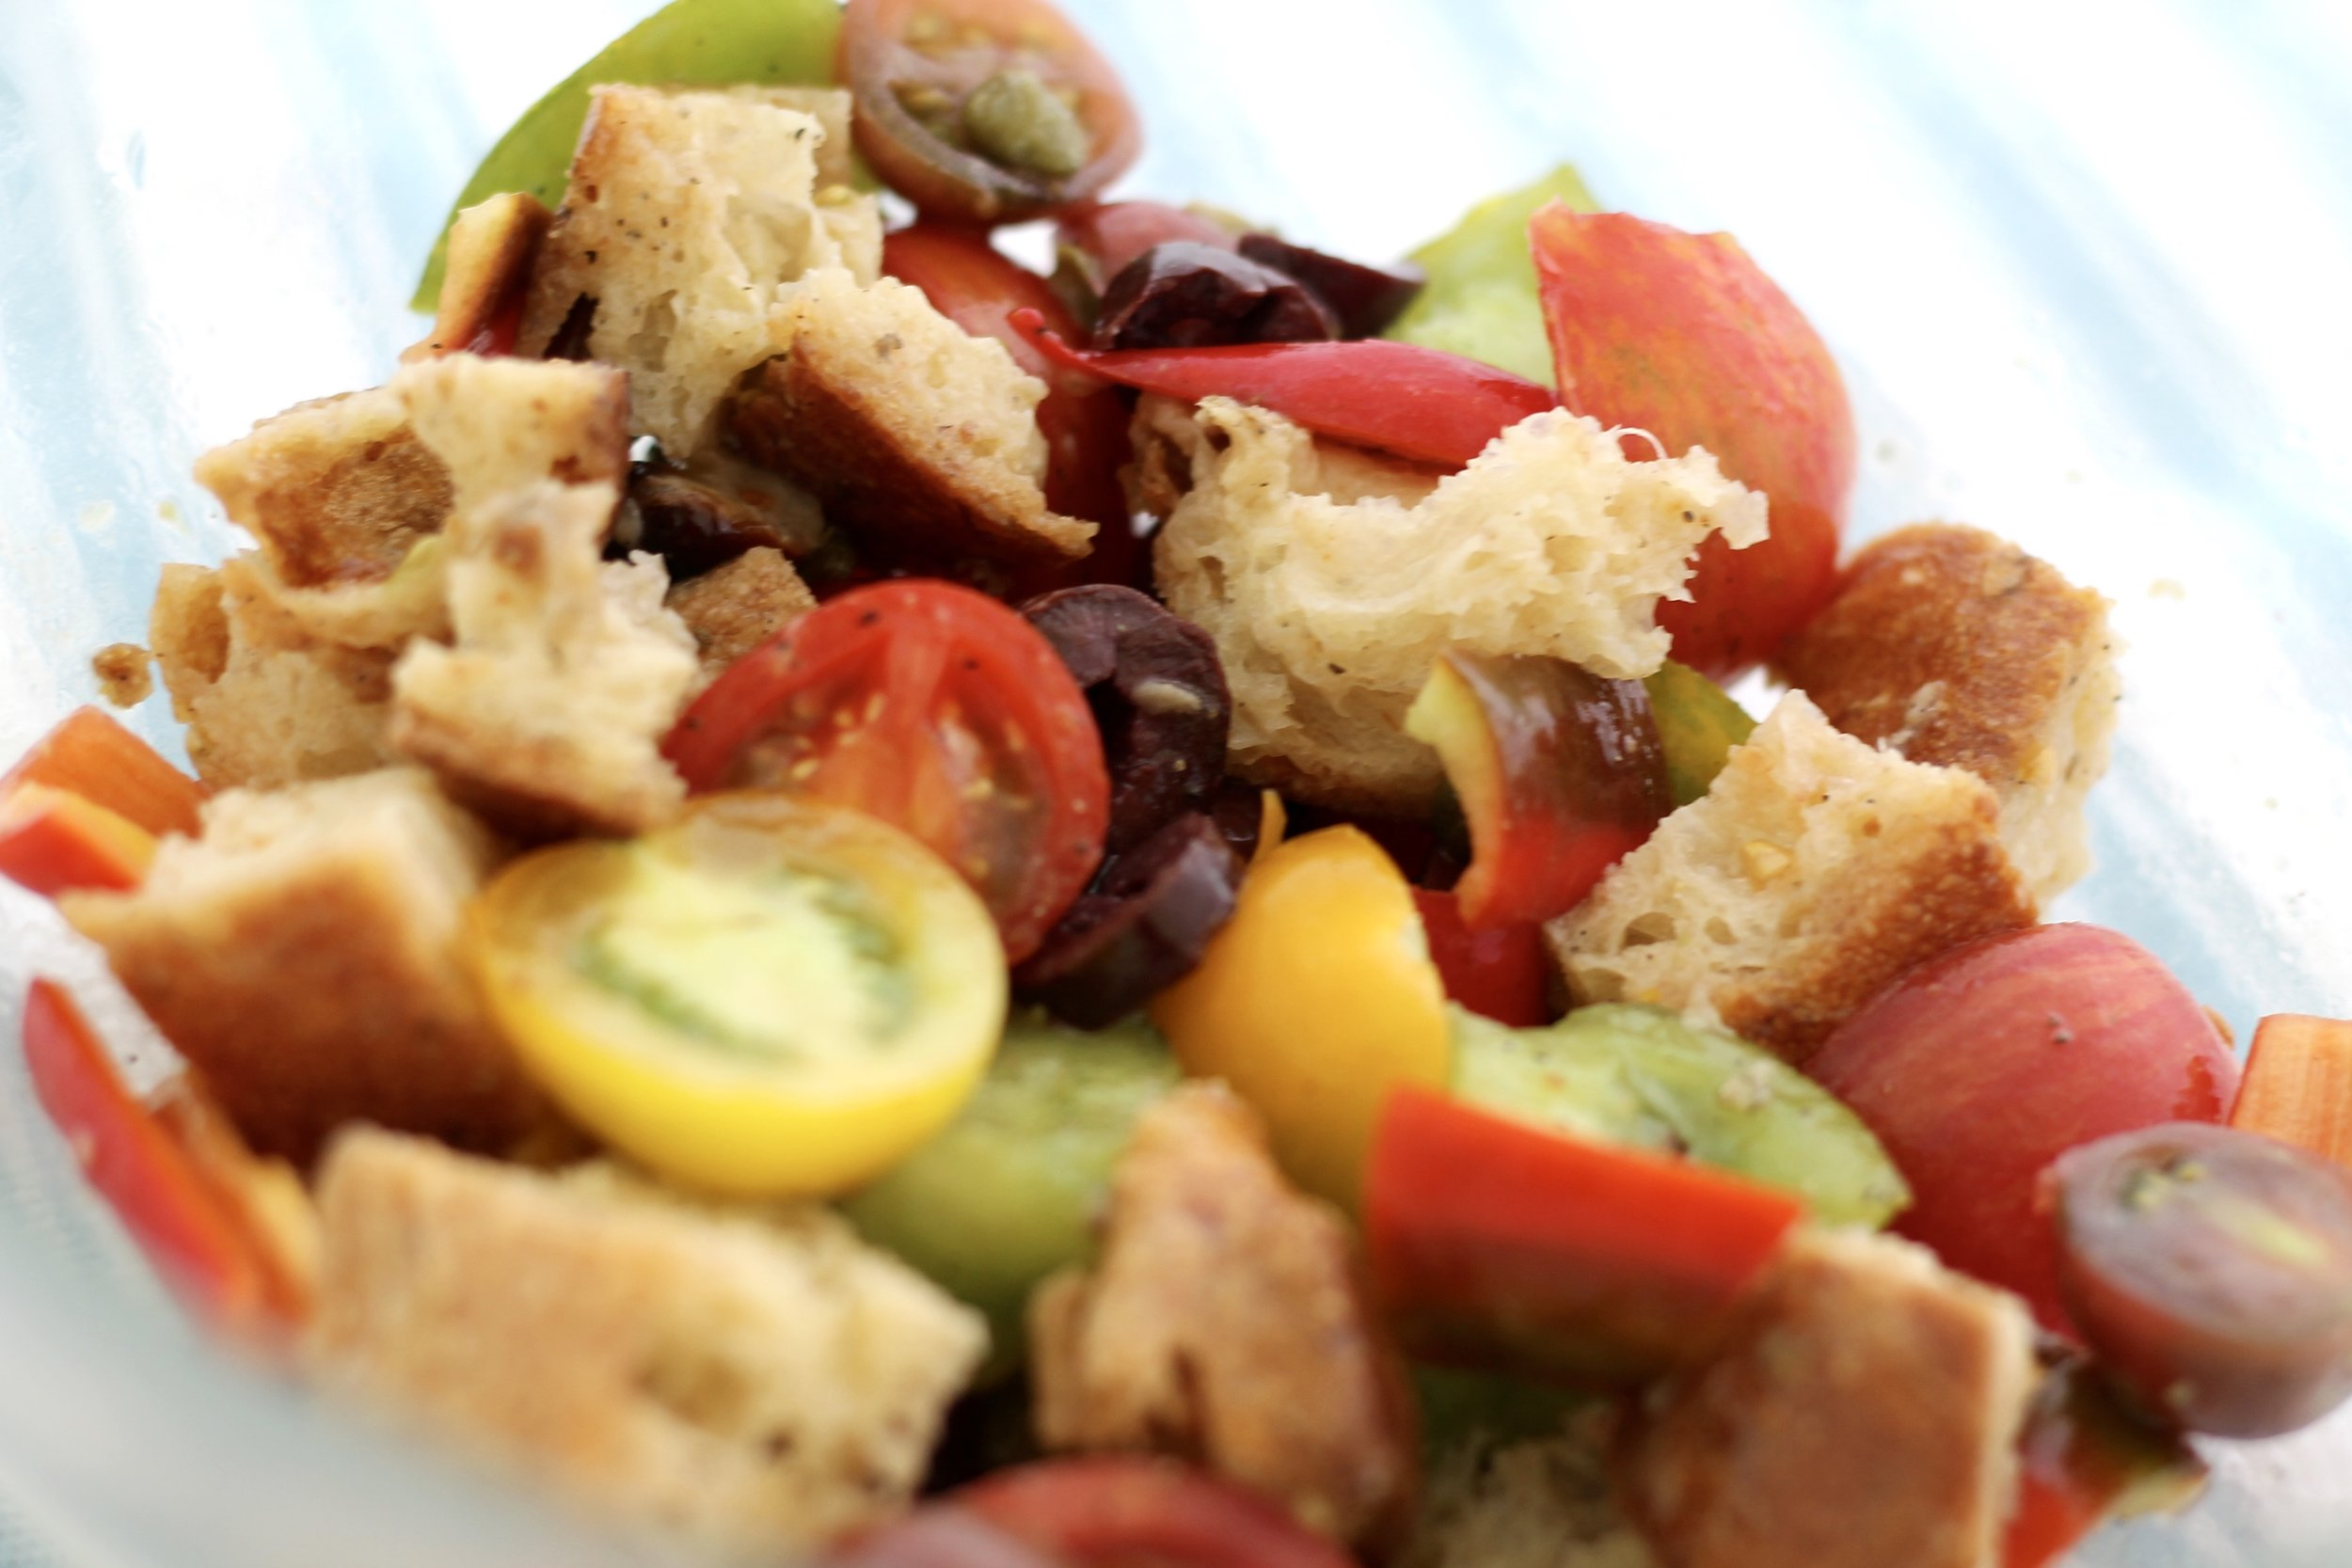 Farmer's Market Panzanella with Lemon Anchovy Dressing. Recipe and Images via The Entertaining House